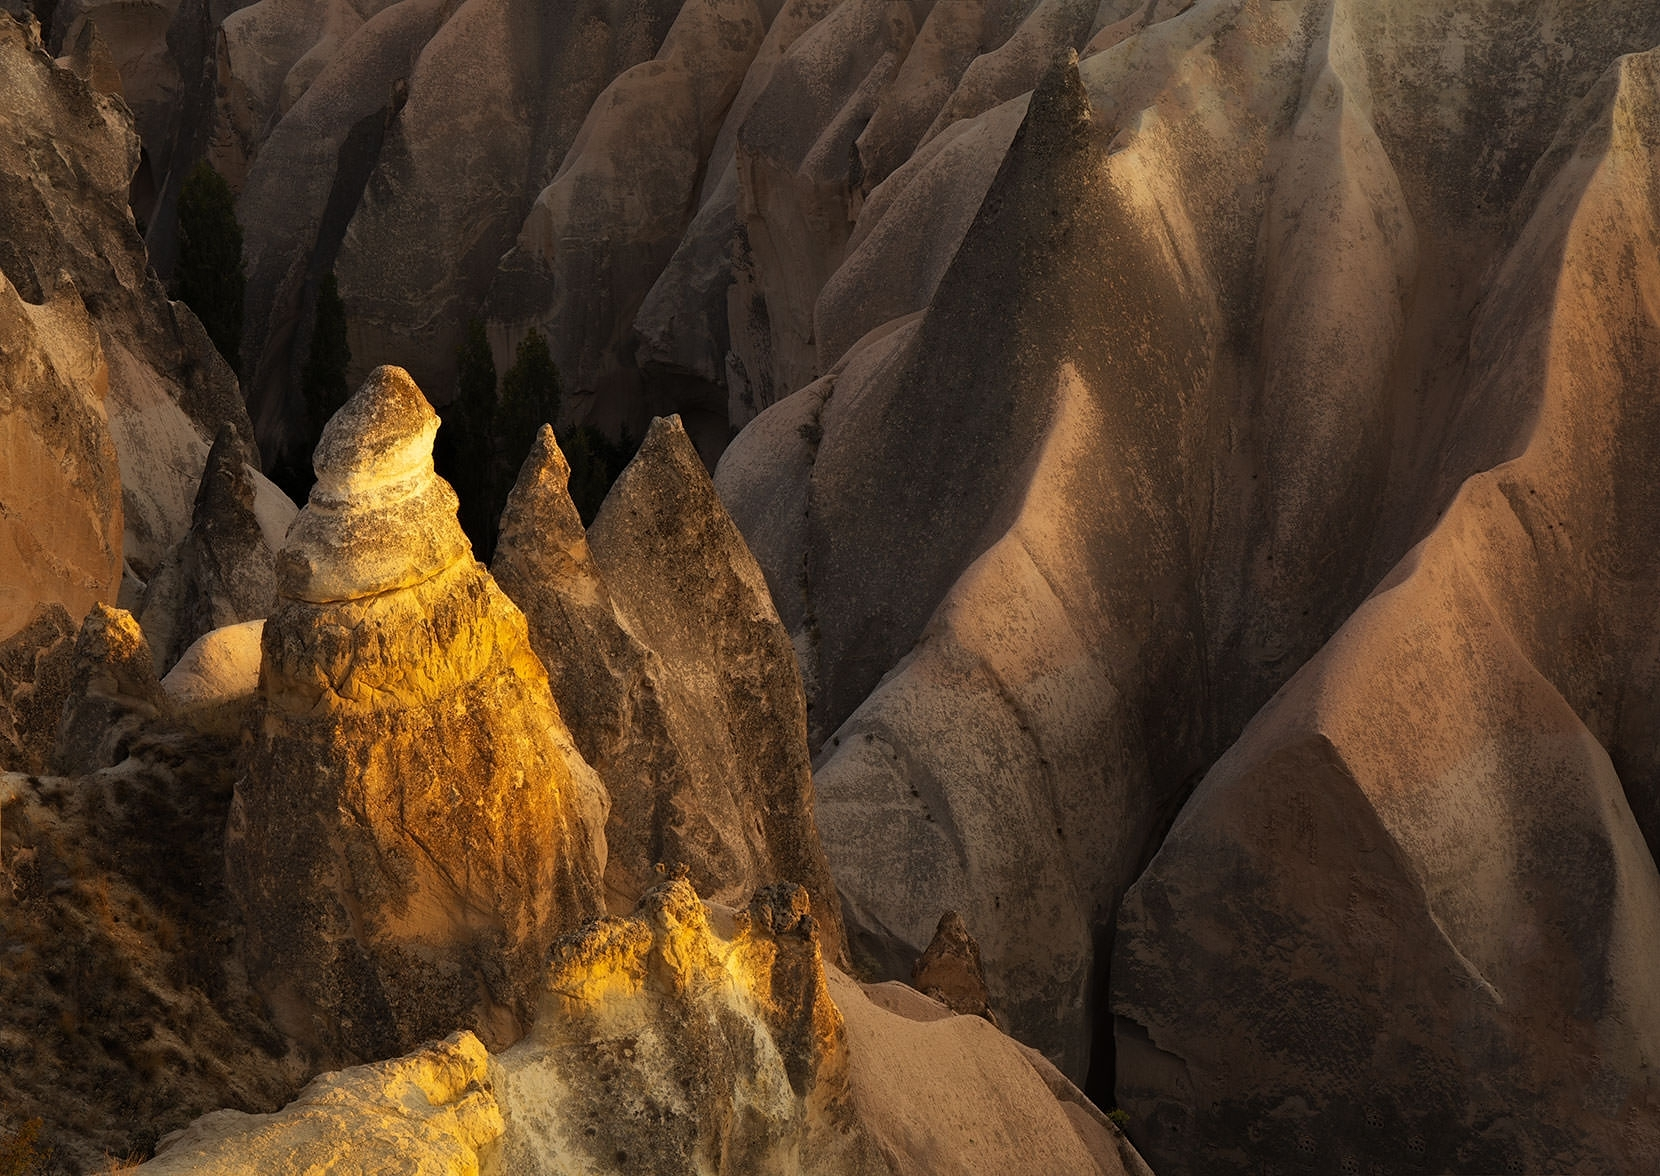 Incredible deep canyons in the Rose Valley make for some knife edge photography